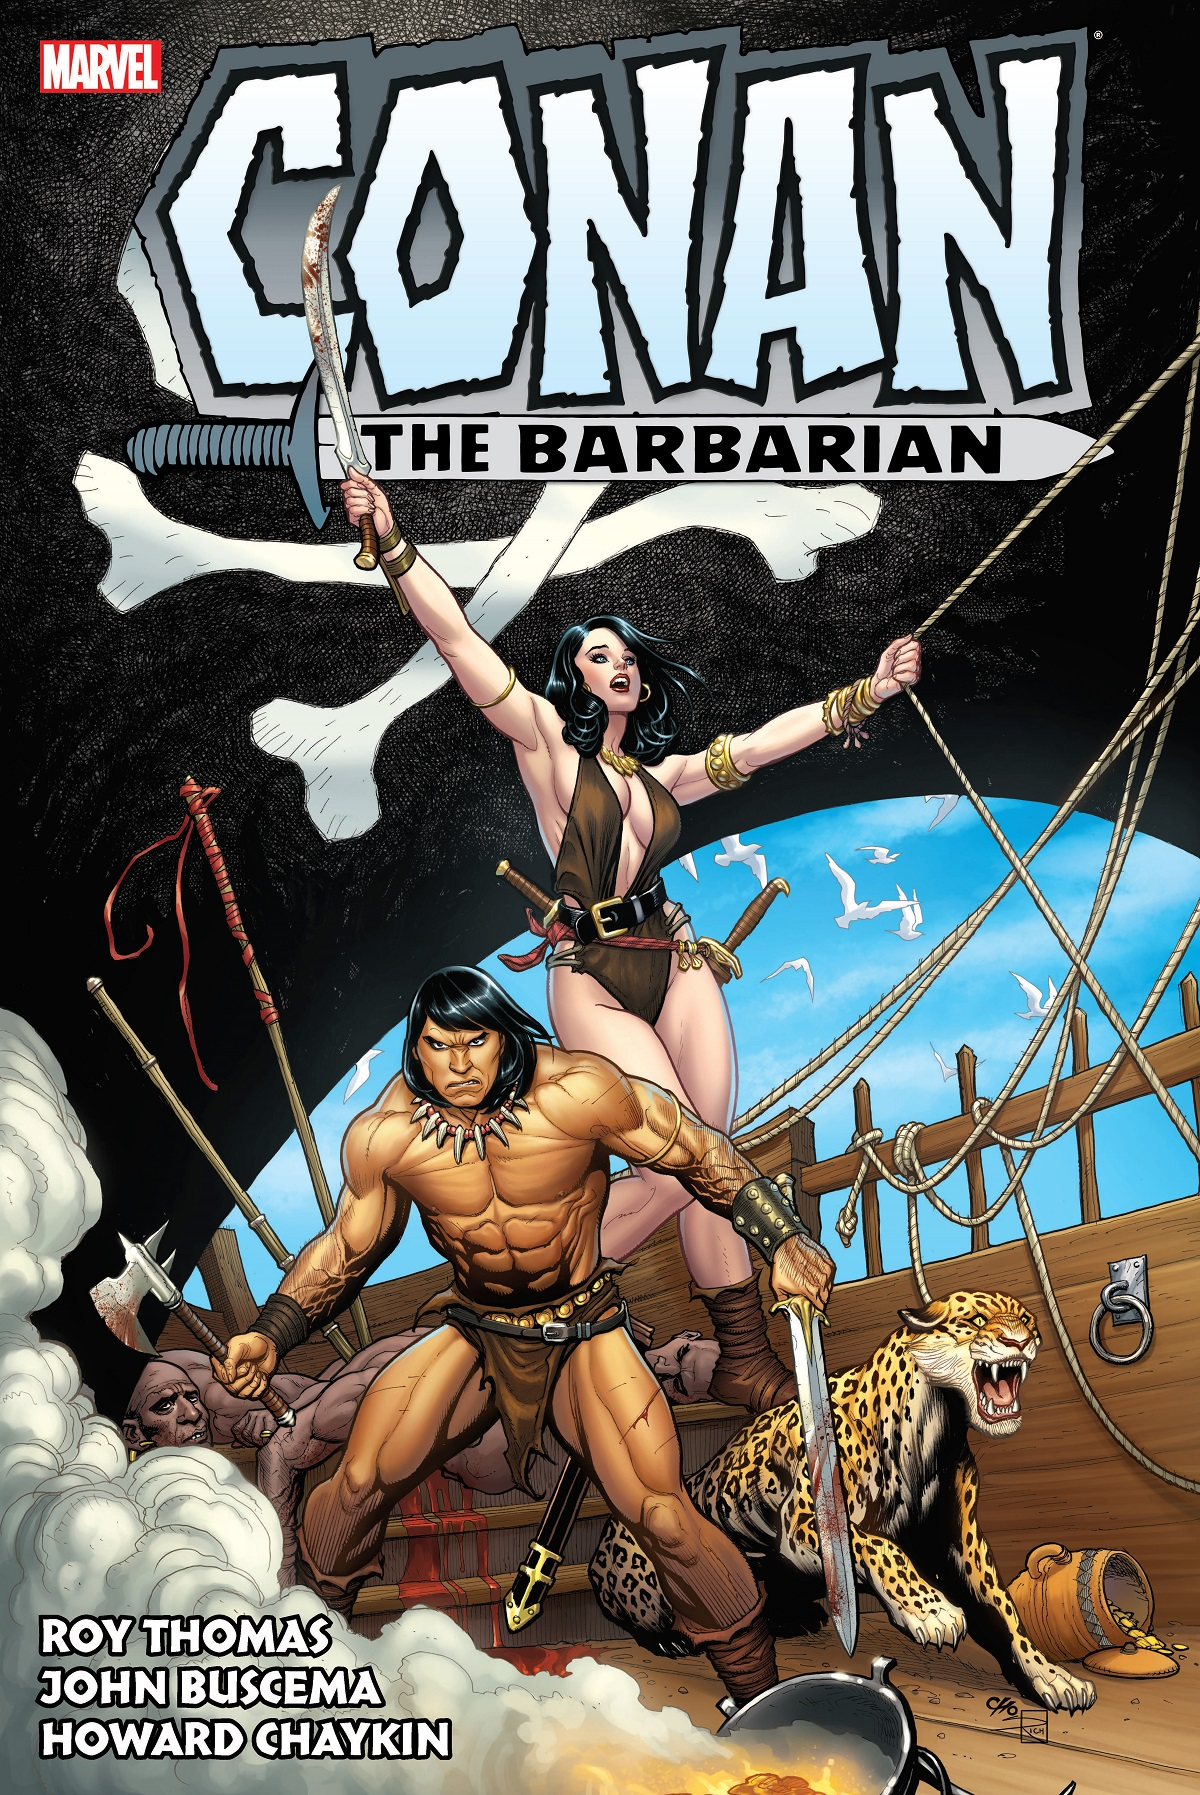 Conan The Barbarian: The Original Marvel Years Omnibus Vol. 3 (Hardcover)